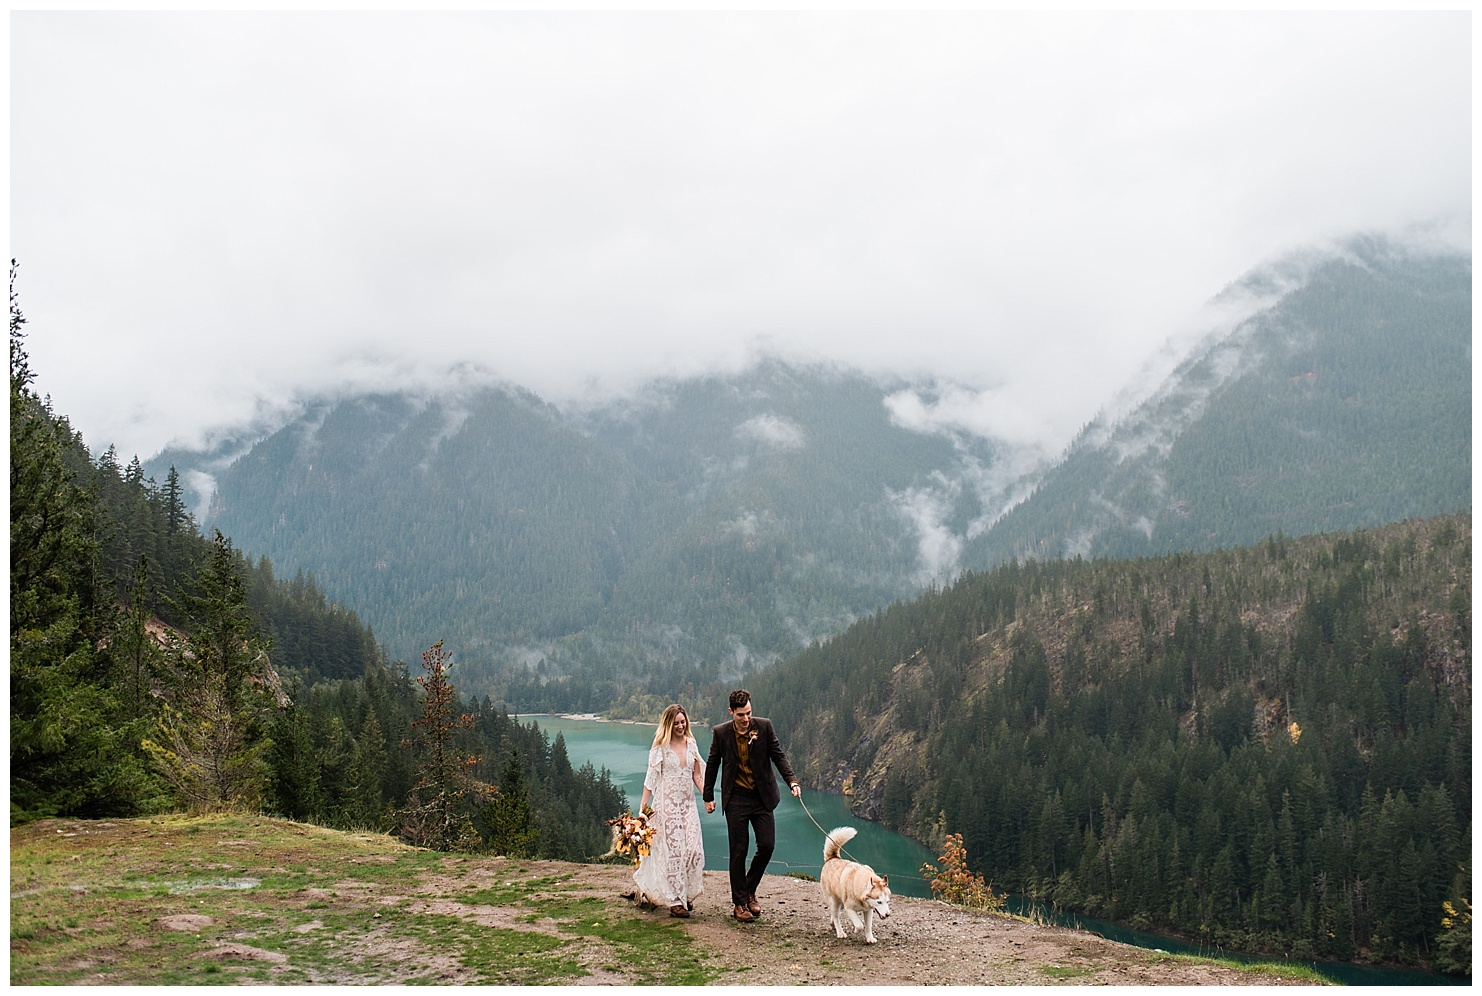 Diablo Lake, North Cascades Elopement by Forthright Photo, pnw elopement photographers, adventurous pnw photographers